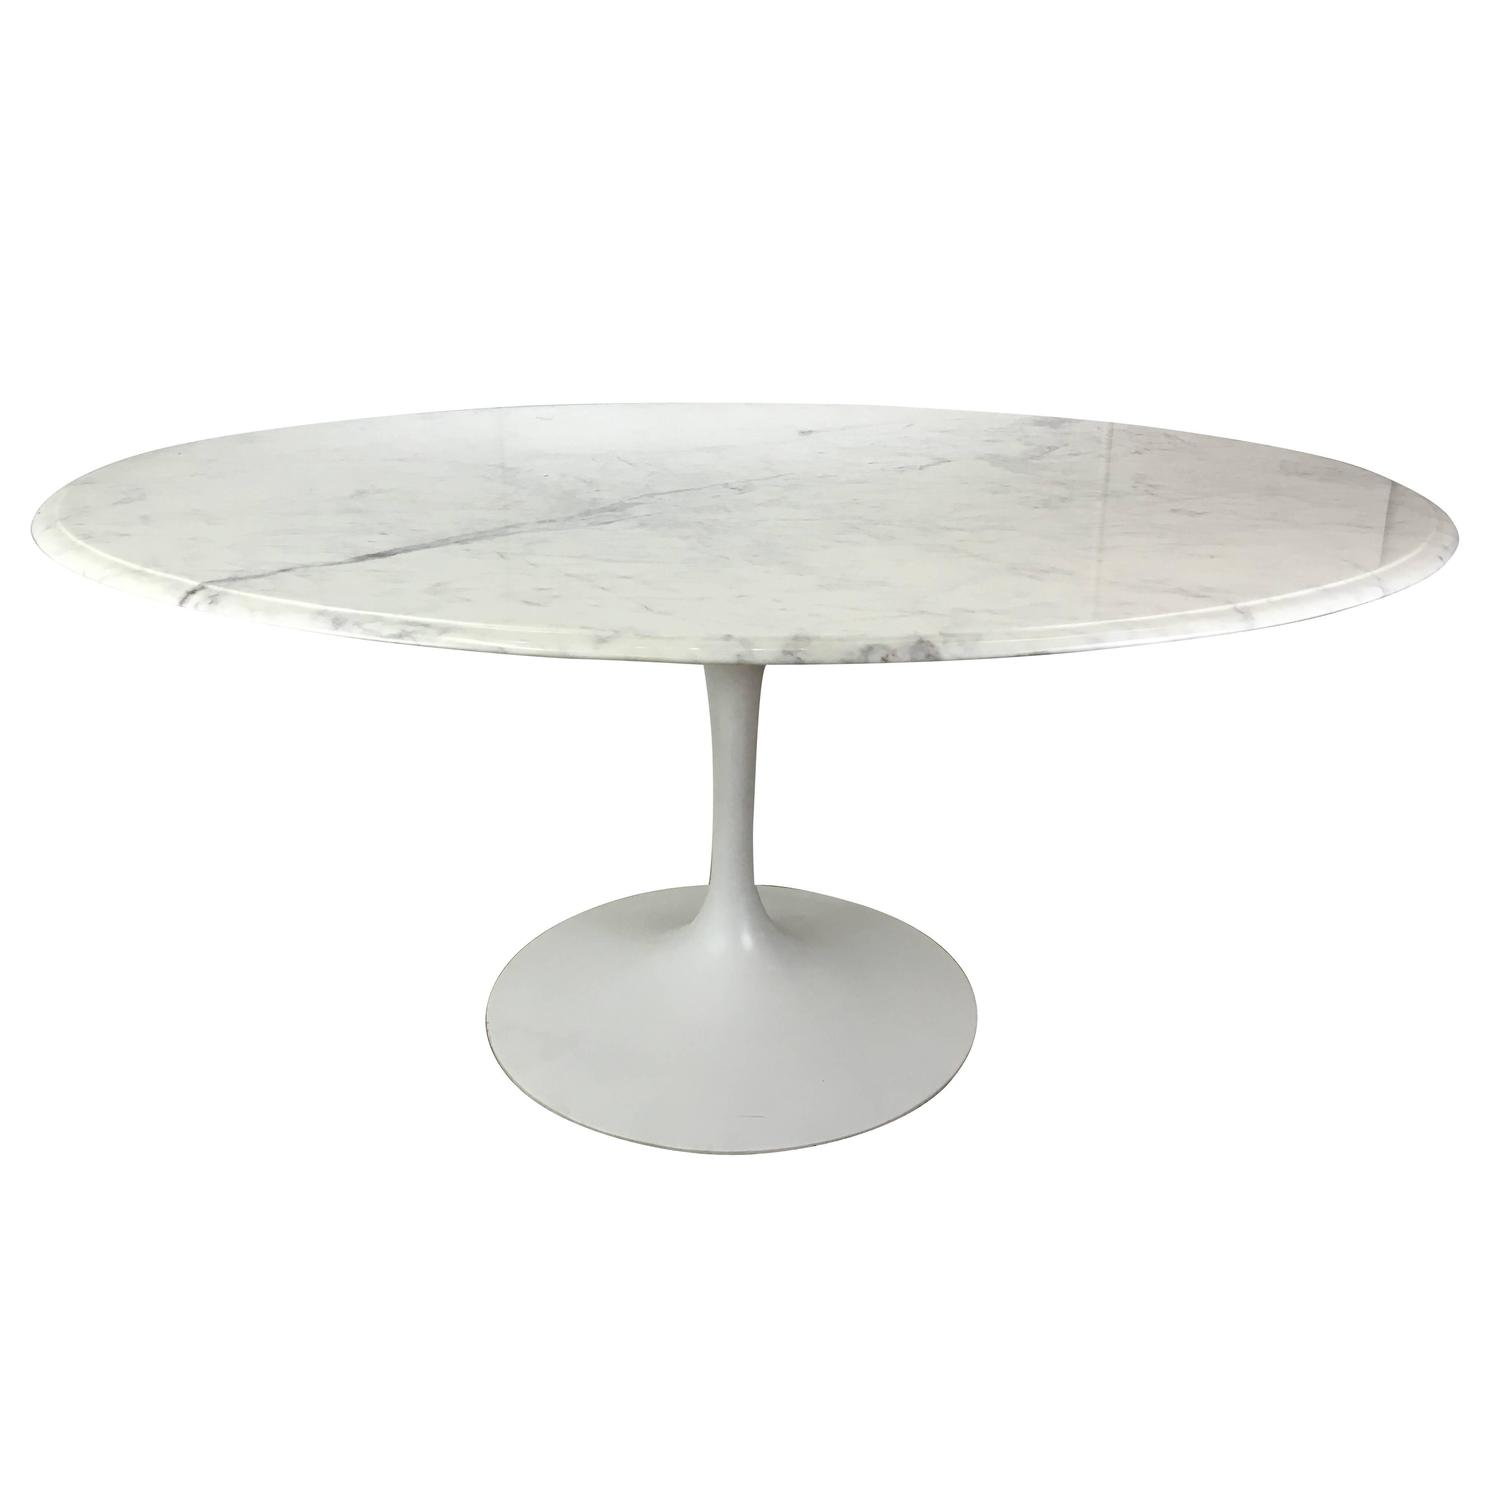 Italian marble top tulip dining table at 1stdibs for Marble top dining table